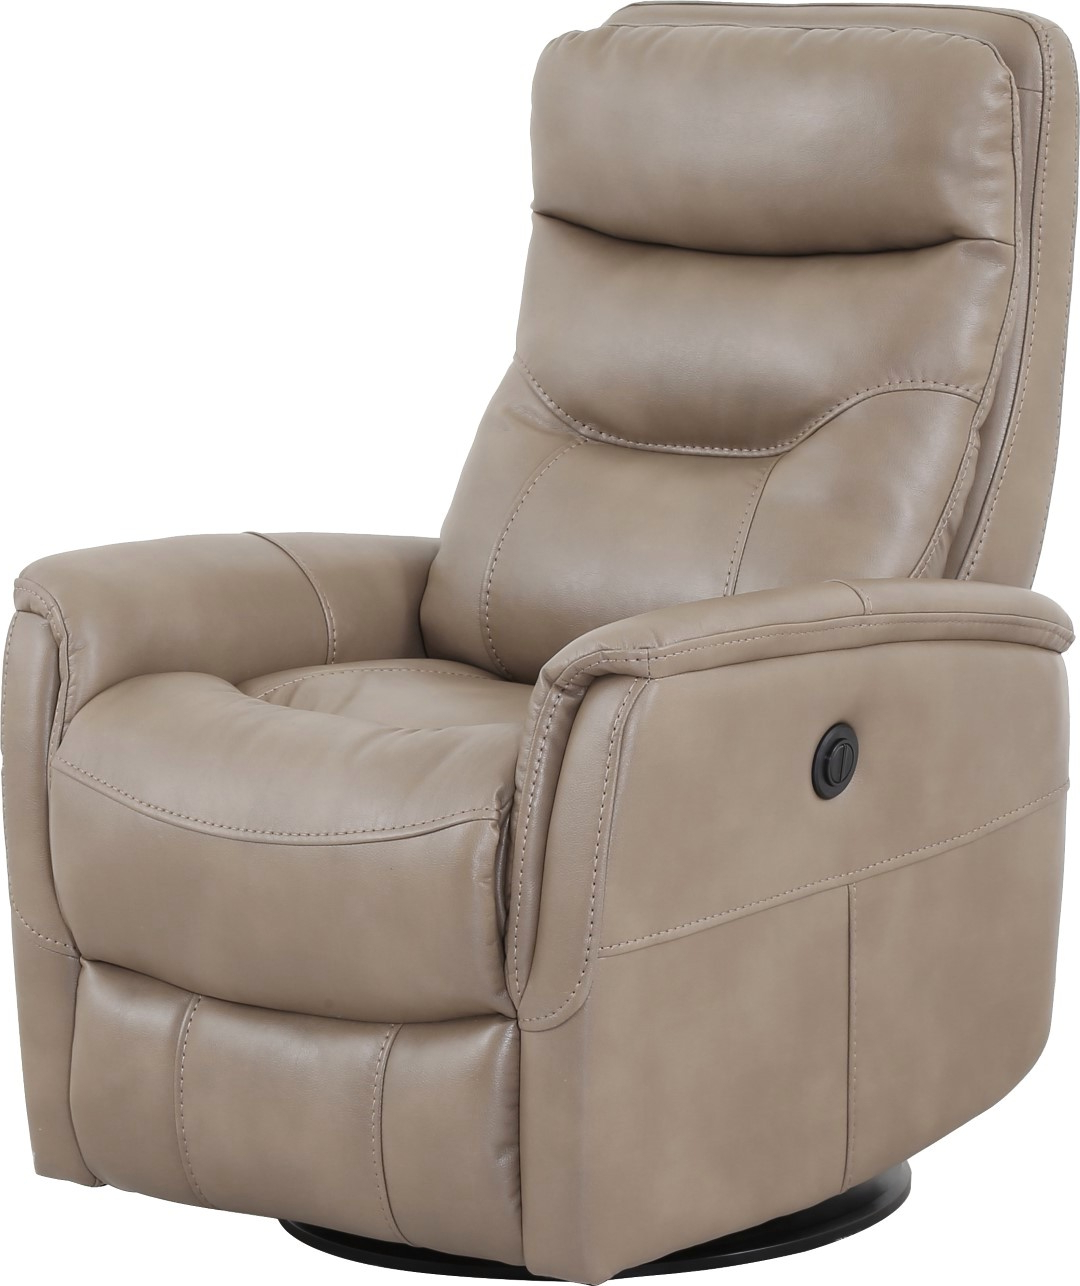 Hercules Oyster Swivel Glider Recliners For Well Known Gemini Linen Swivel Glider Power Recliner With Articulating Headrest (Gallery 12 of 20)